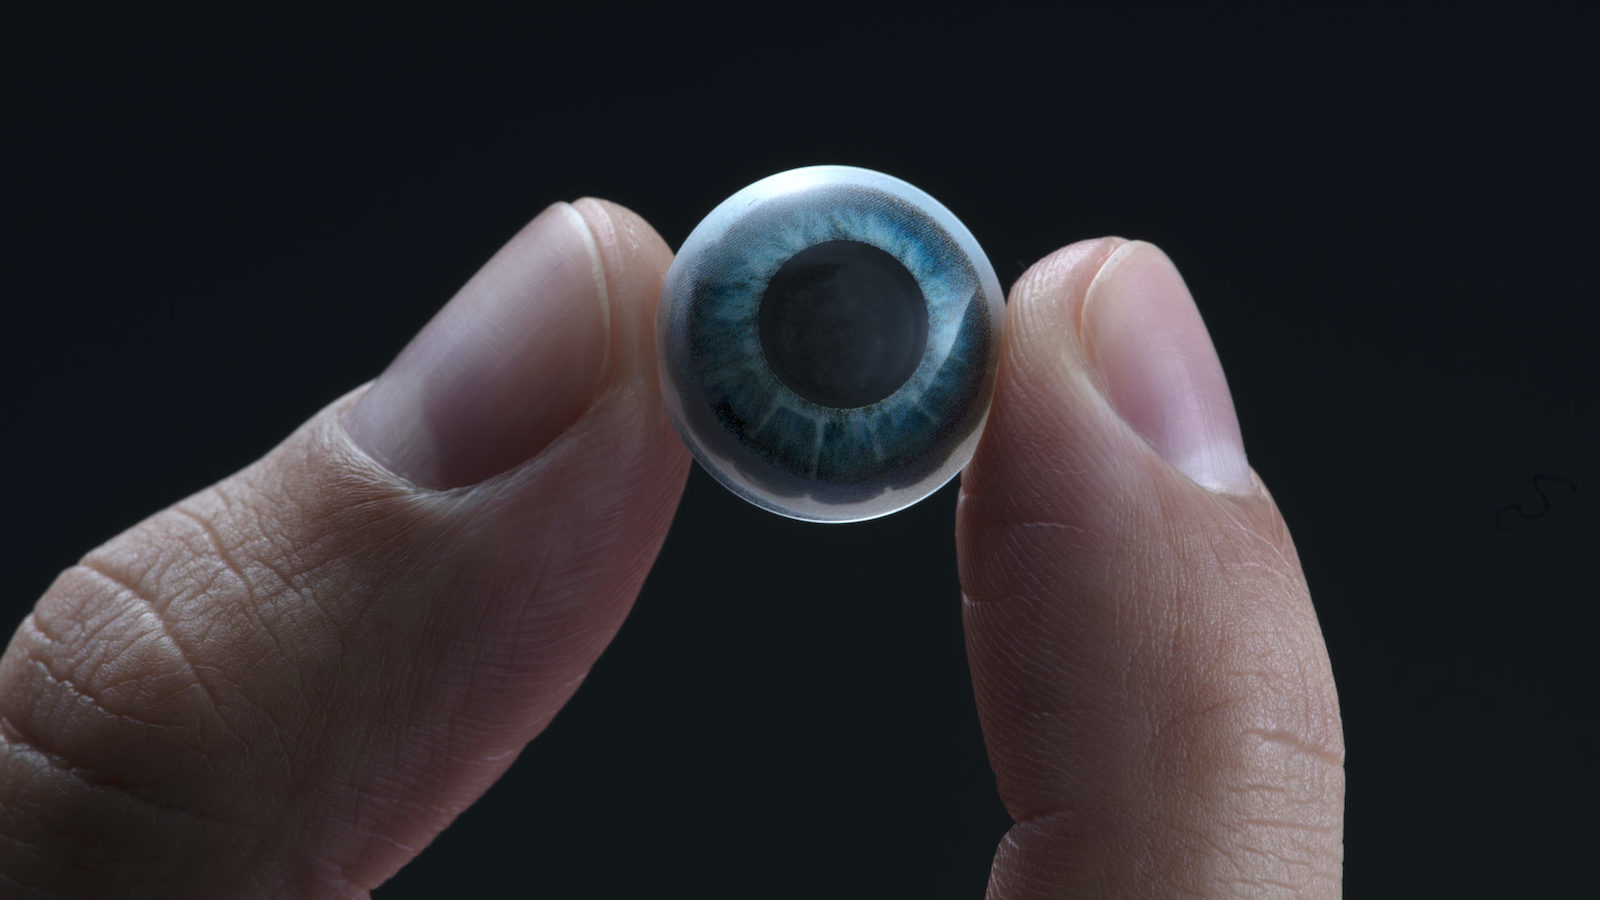 Mojo Vision Lens AR contact lens seamlessly displays digital information